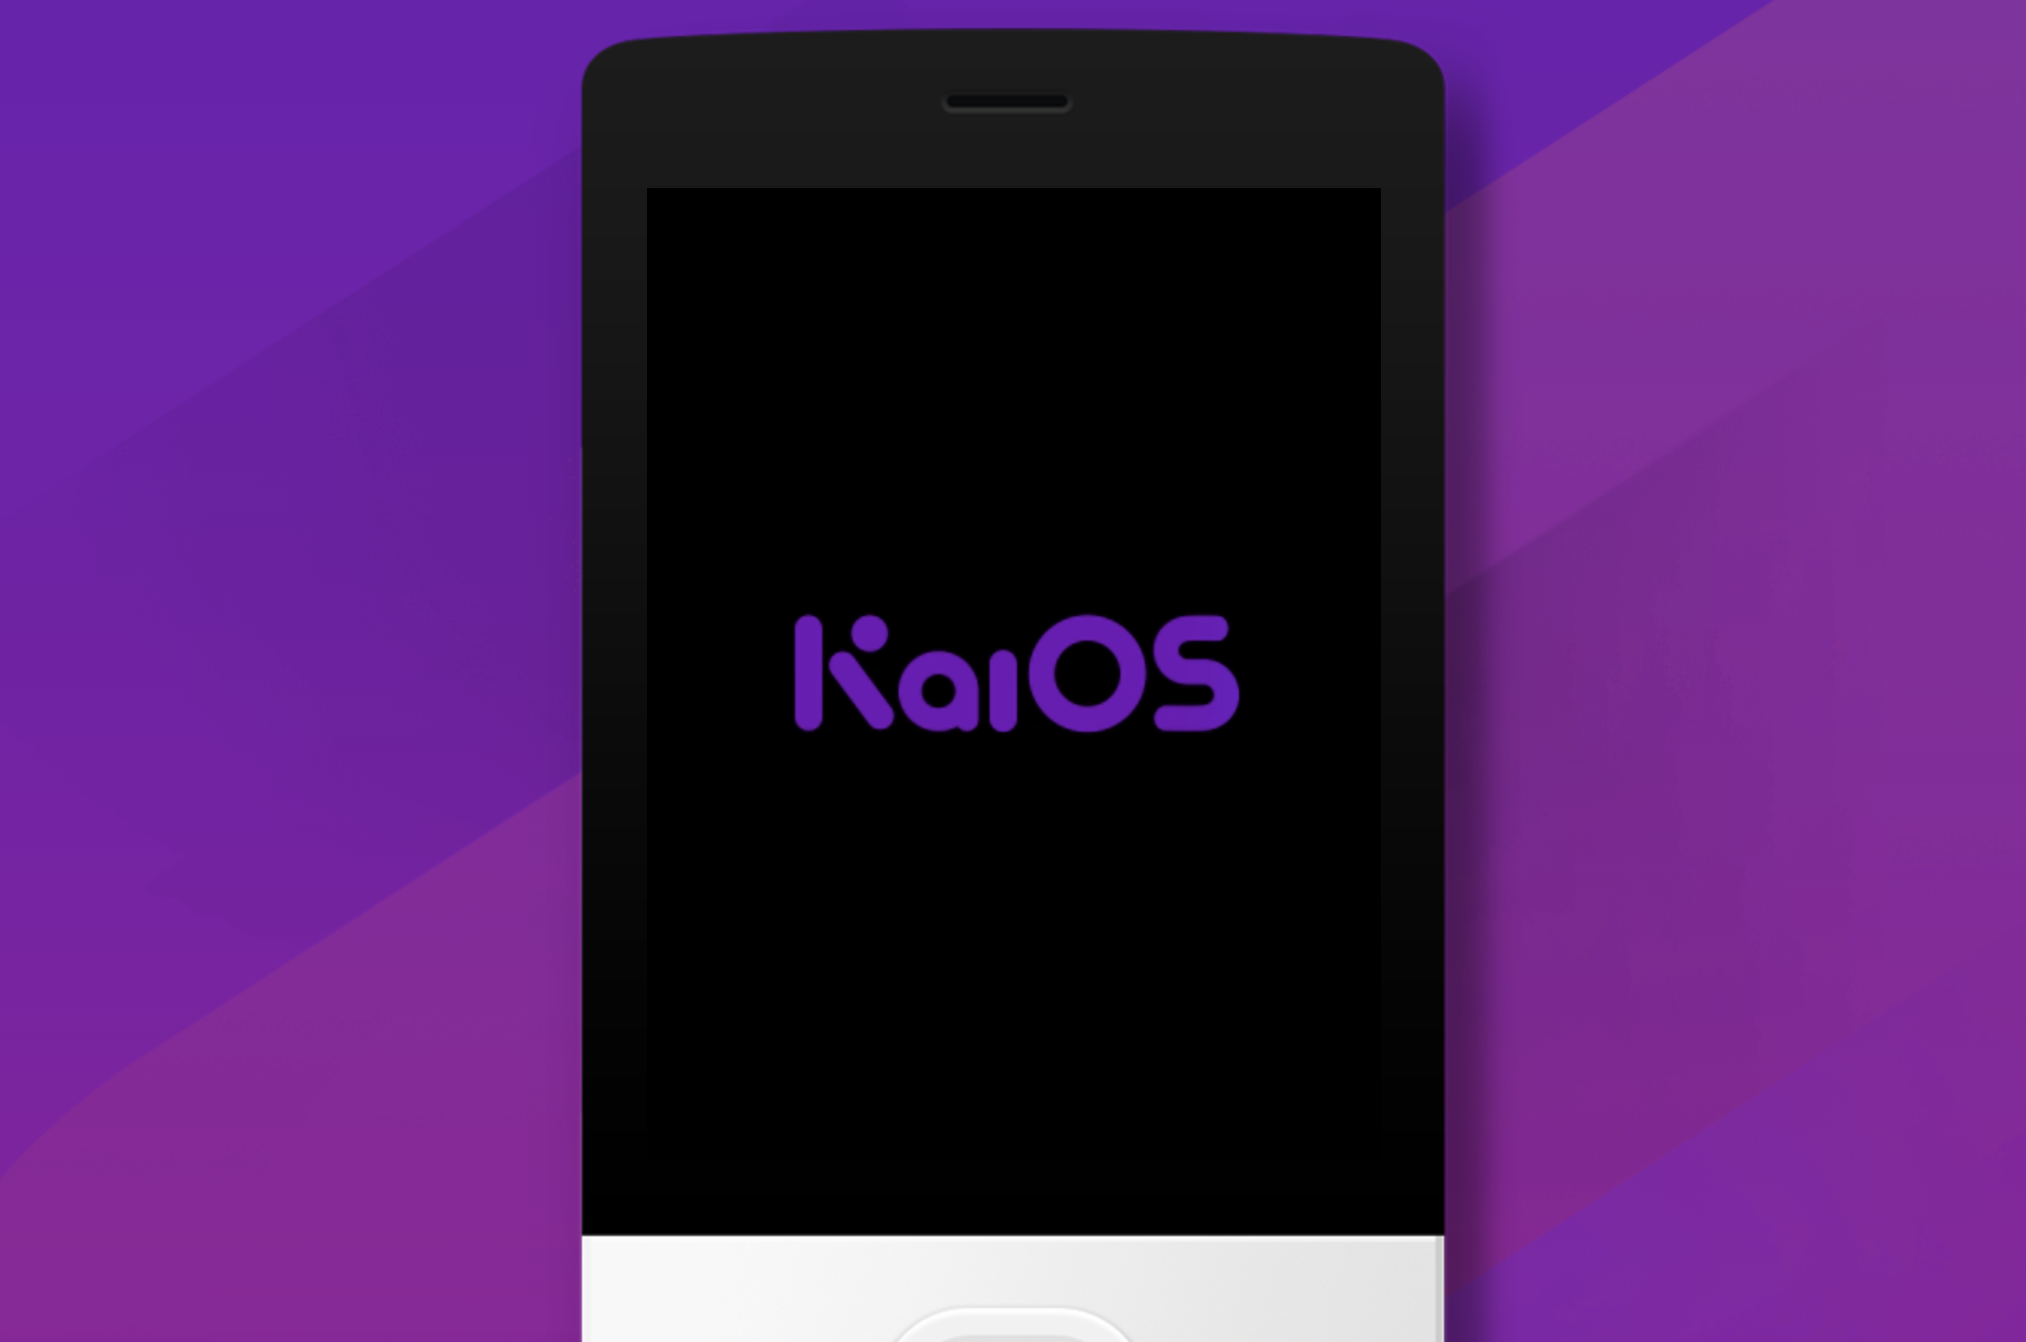 KaiOS, a feature phone platform built on the ashes of Firefox OS